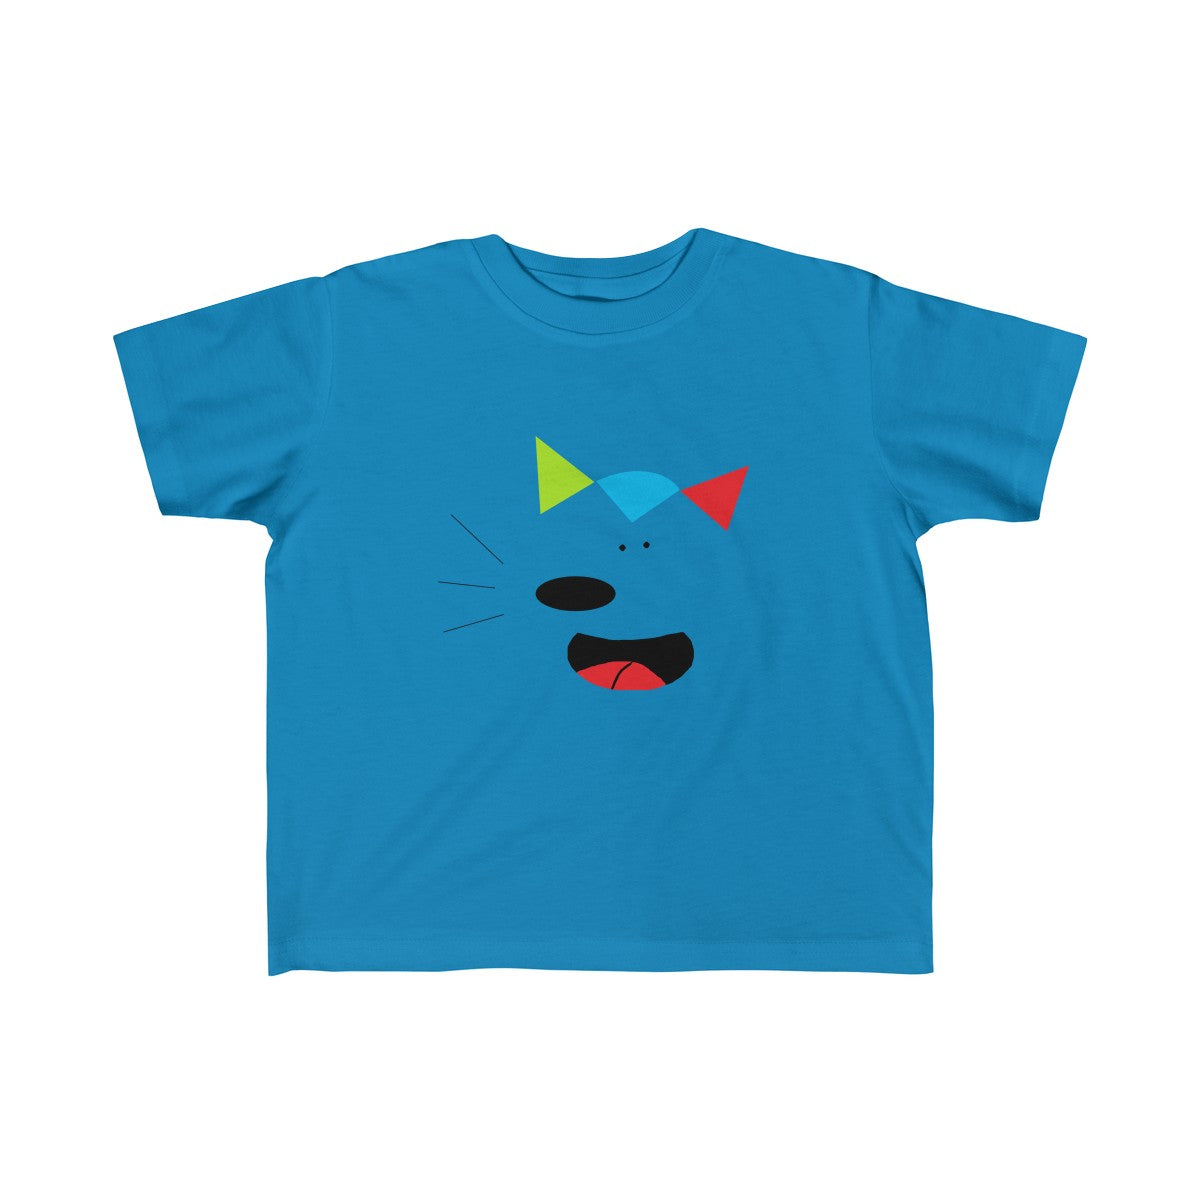 The Happy Rocco Kid's Tee